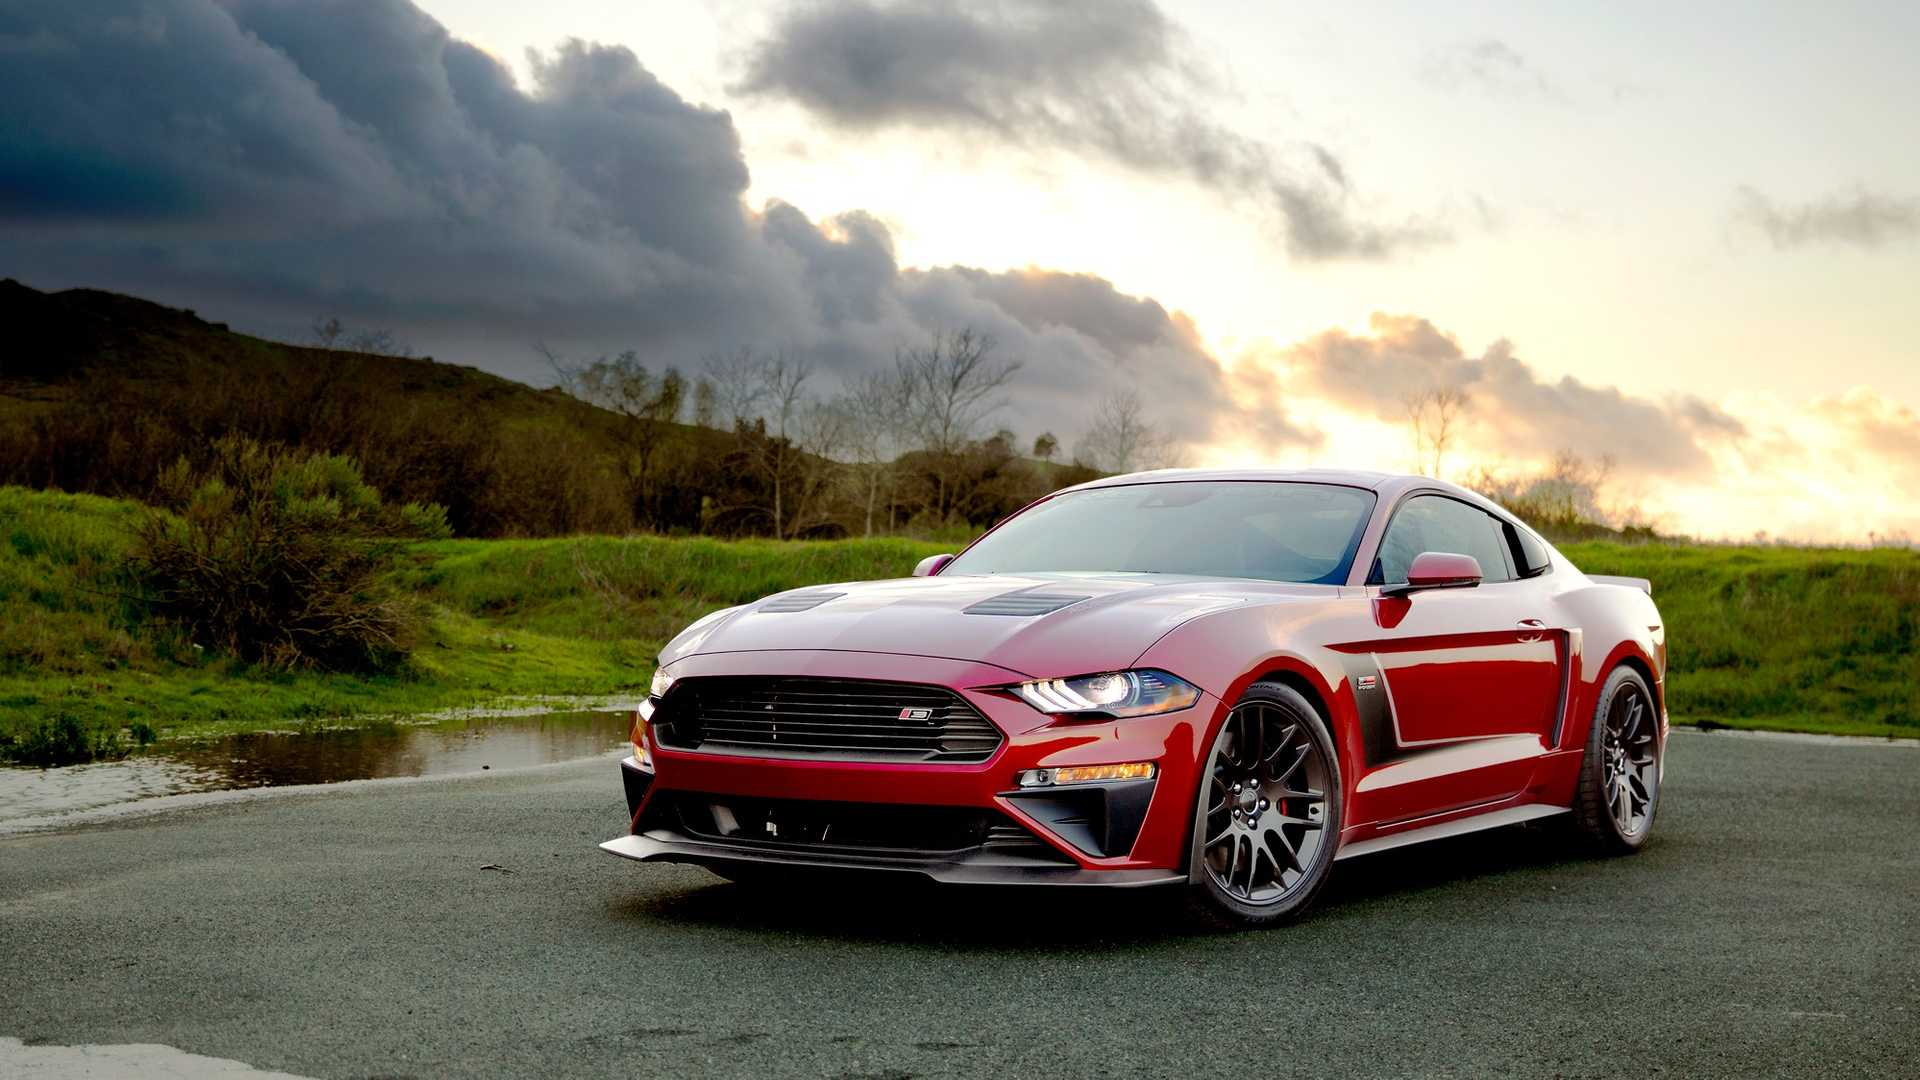 Roush Bringing Stage 3 Mustang, Lifted F-150 To the 2019 NYIAS - autoevolution